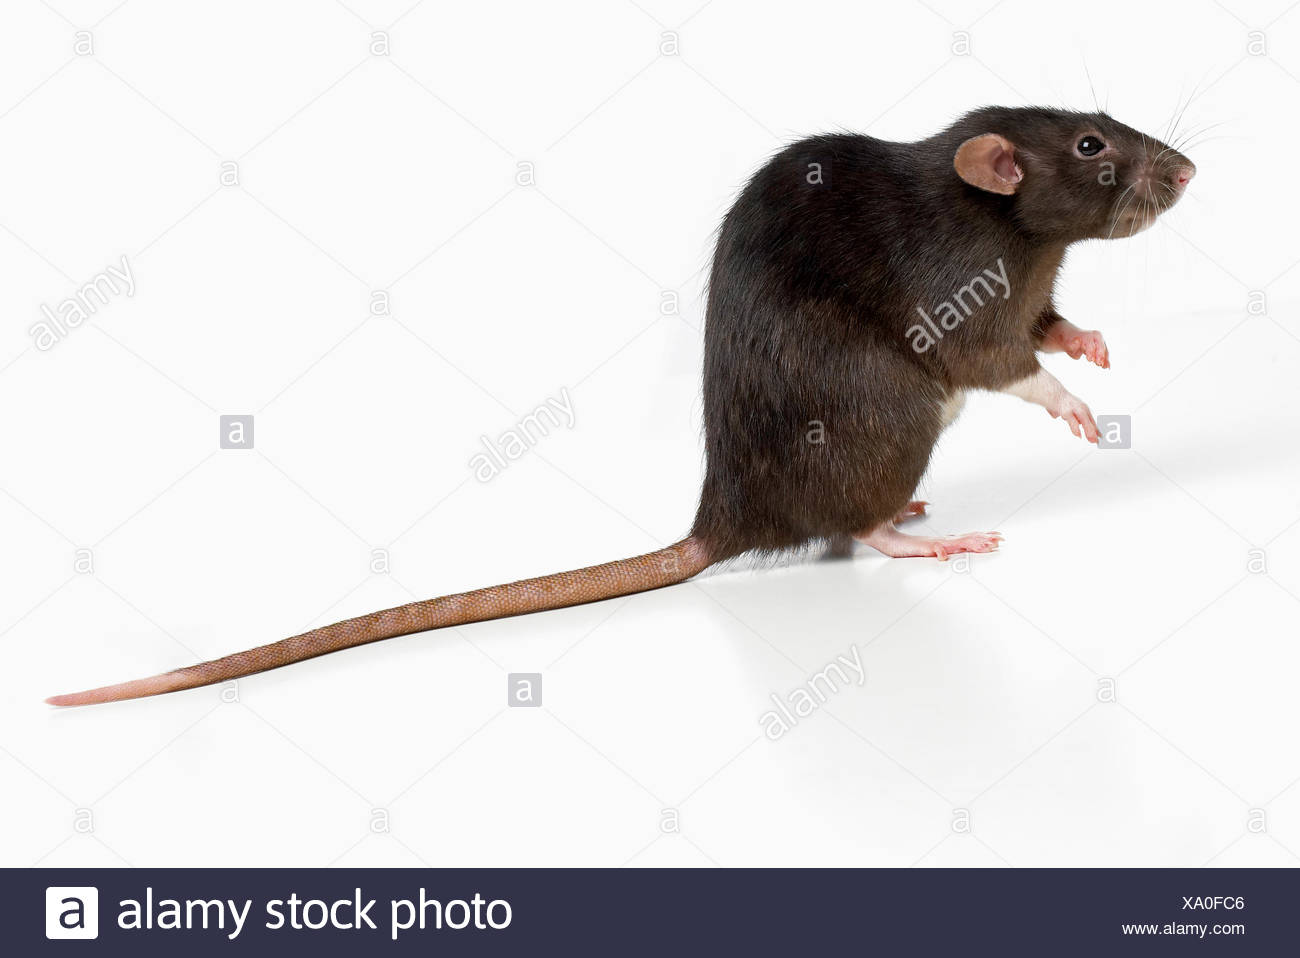 Dumbo rat, pet rat - Stock Image